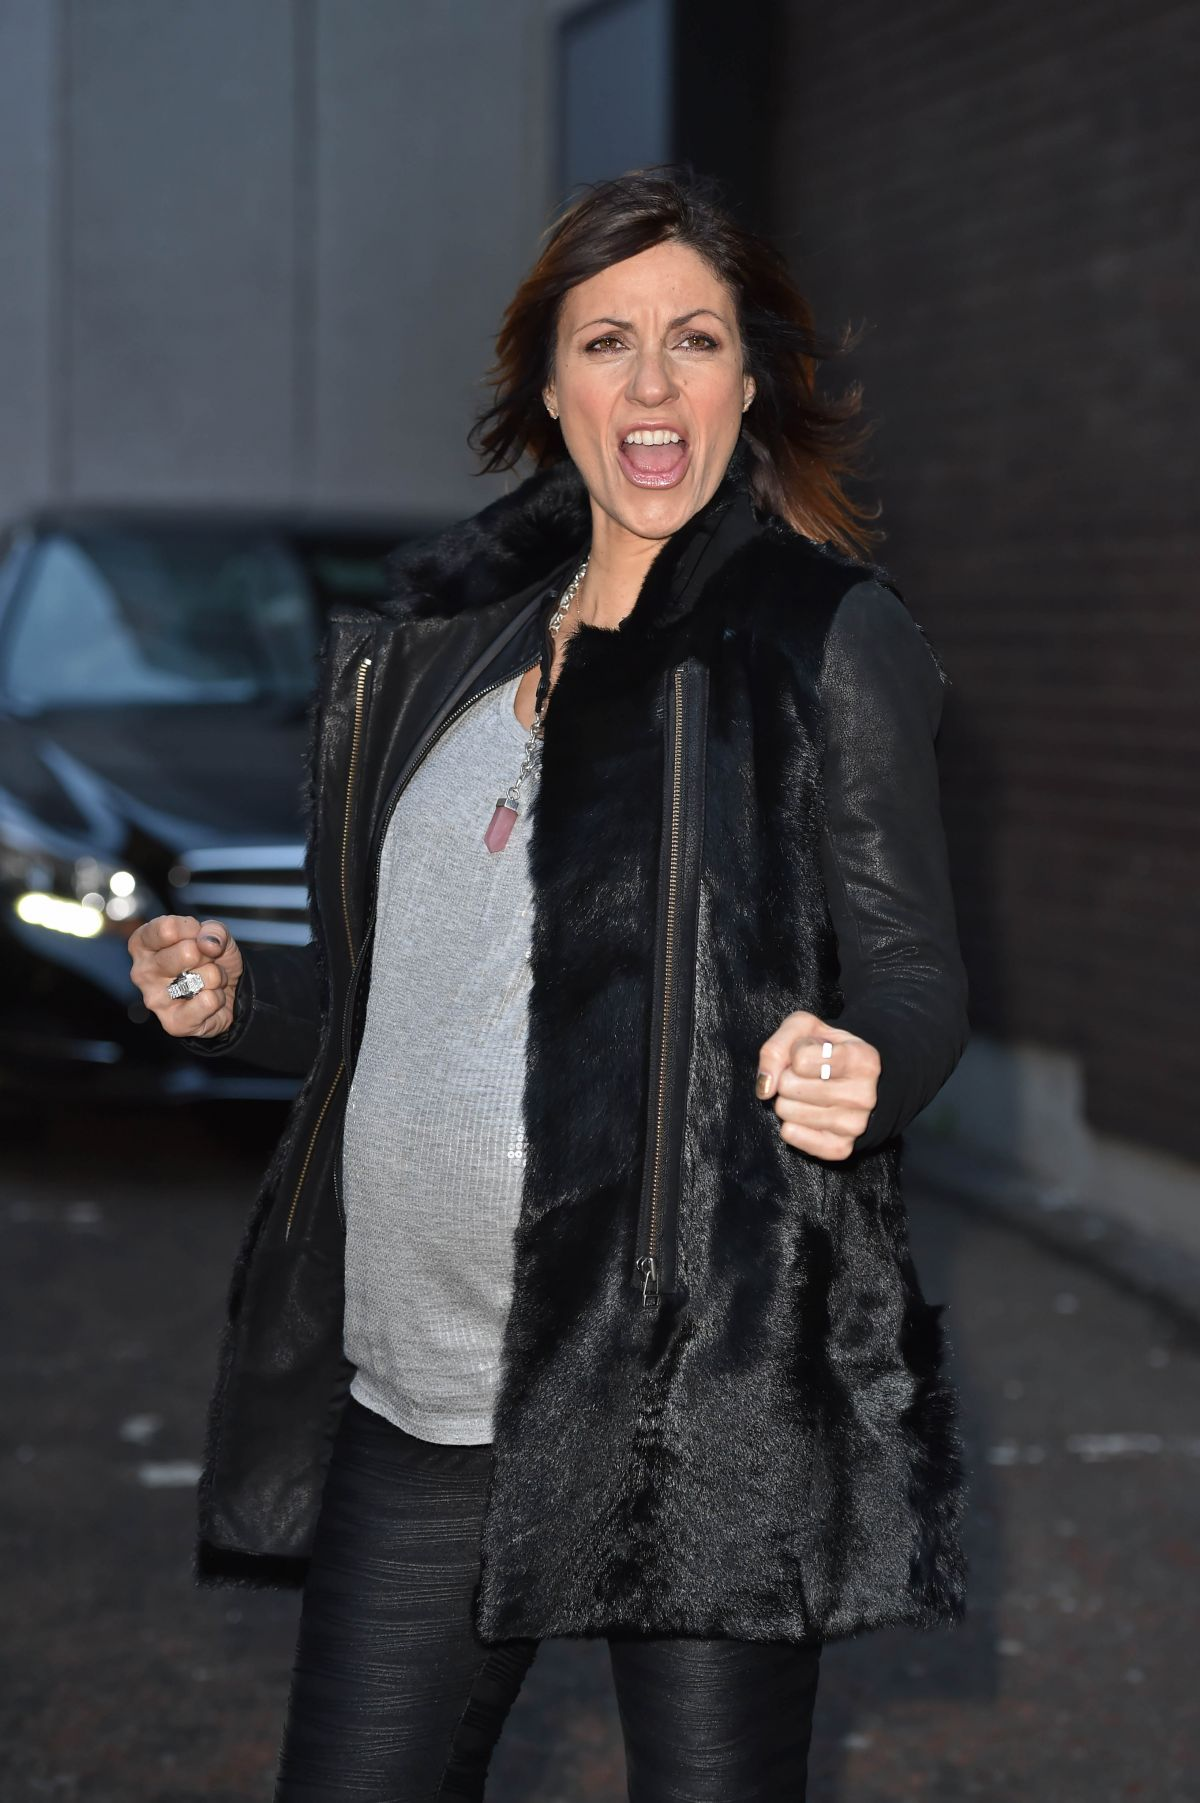 JULIA BRADBURY at ITV Studios in London